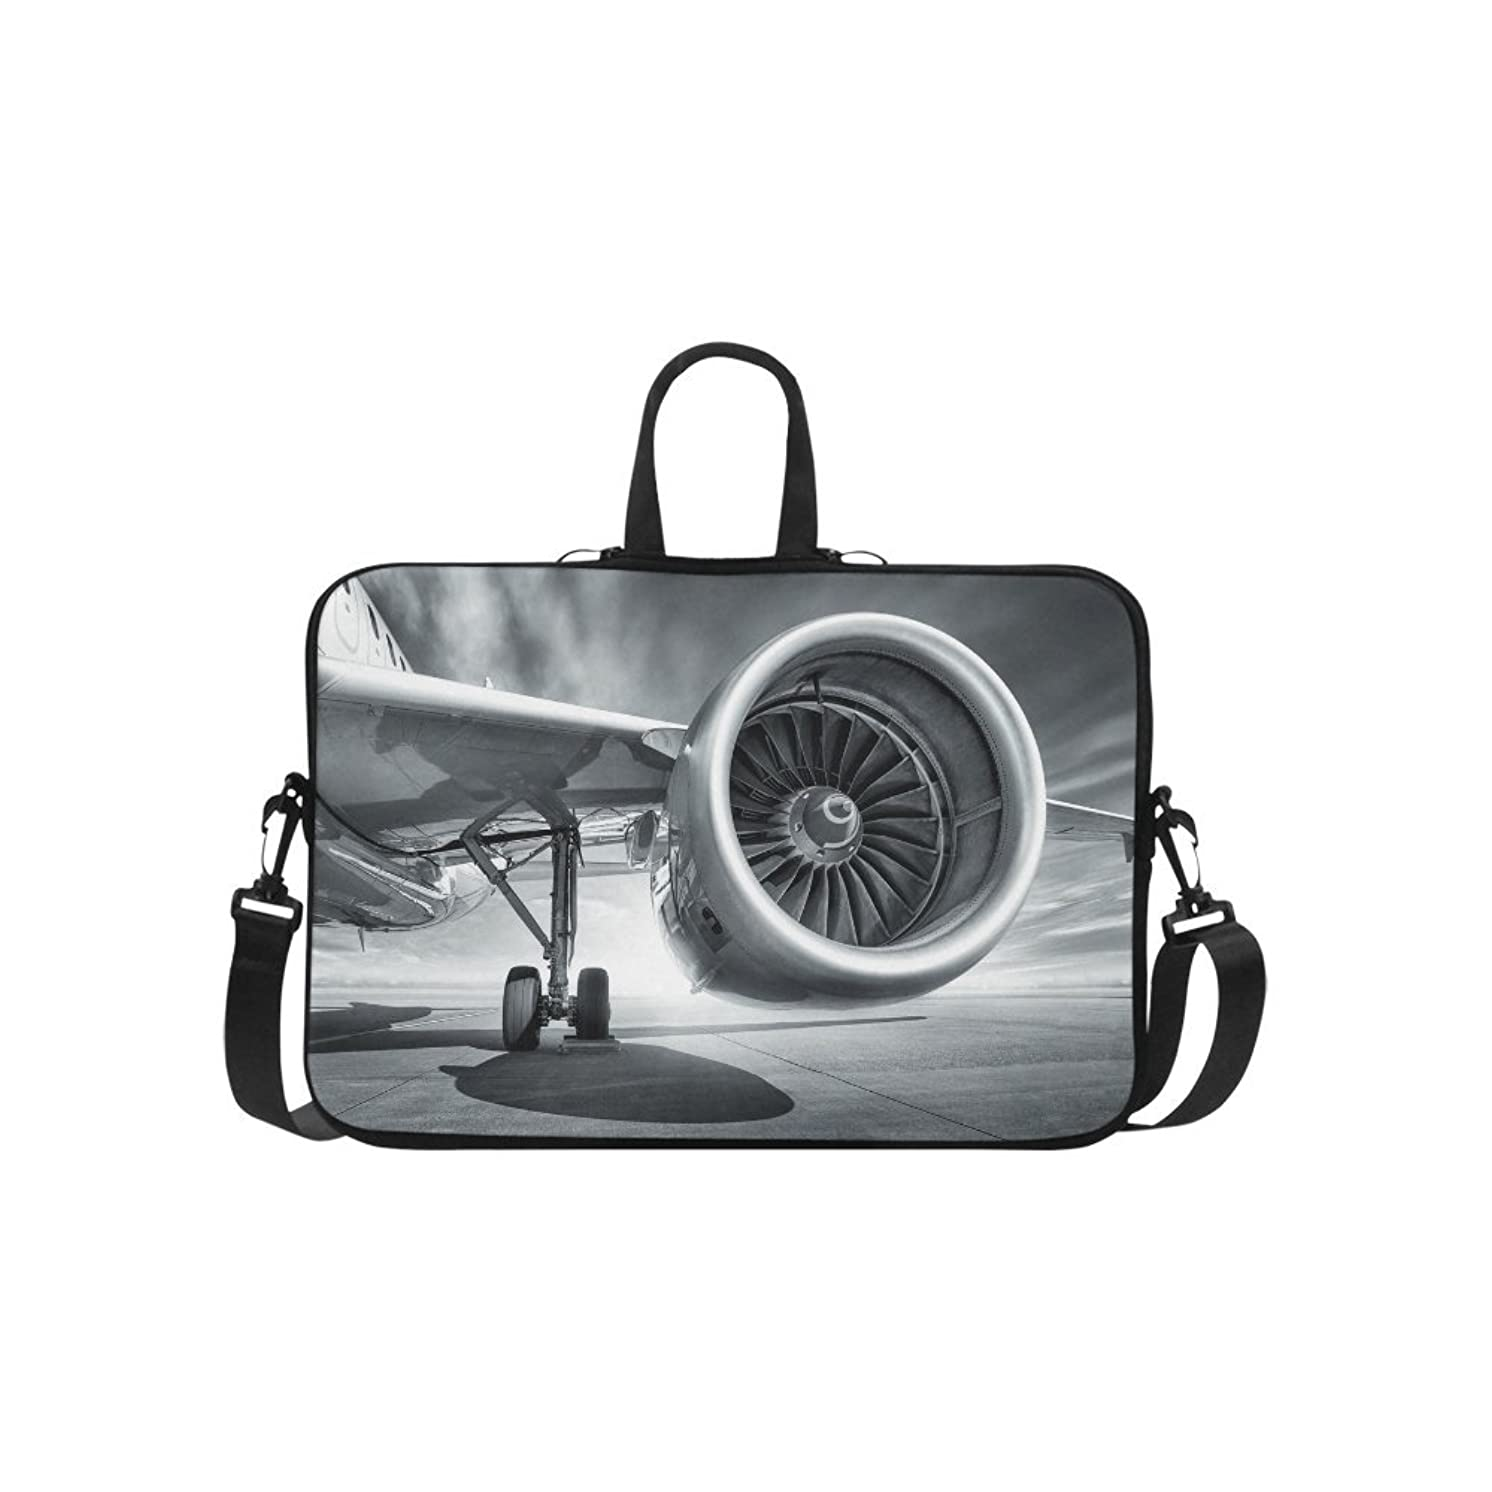 InterestPrint Cool Jet Engine Airplane Theme 15 15.6 Inch Notebook Computer Sleeve Shoulder Bag Neoprene Protective Case with Handle & Strap for MacBook Dell HP Woman Man